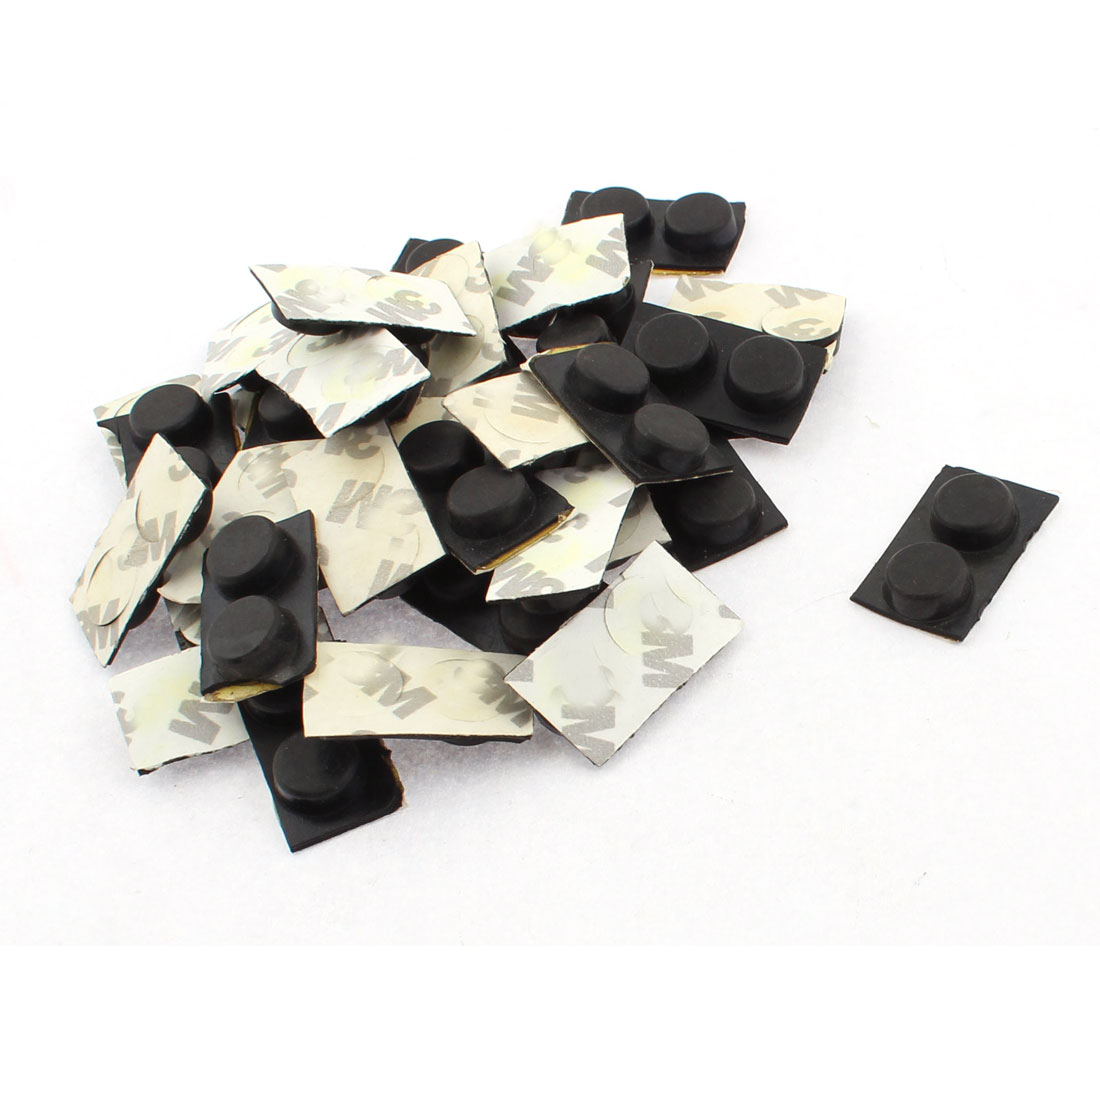 12mm Dia Rubber Self Adhesive Scratch Protection Furniture Floor Pad Black 72pcs